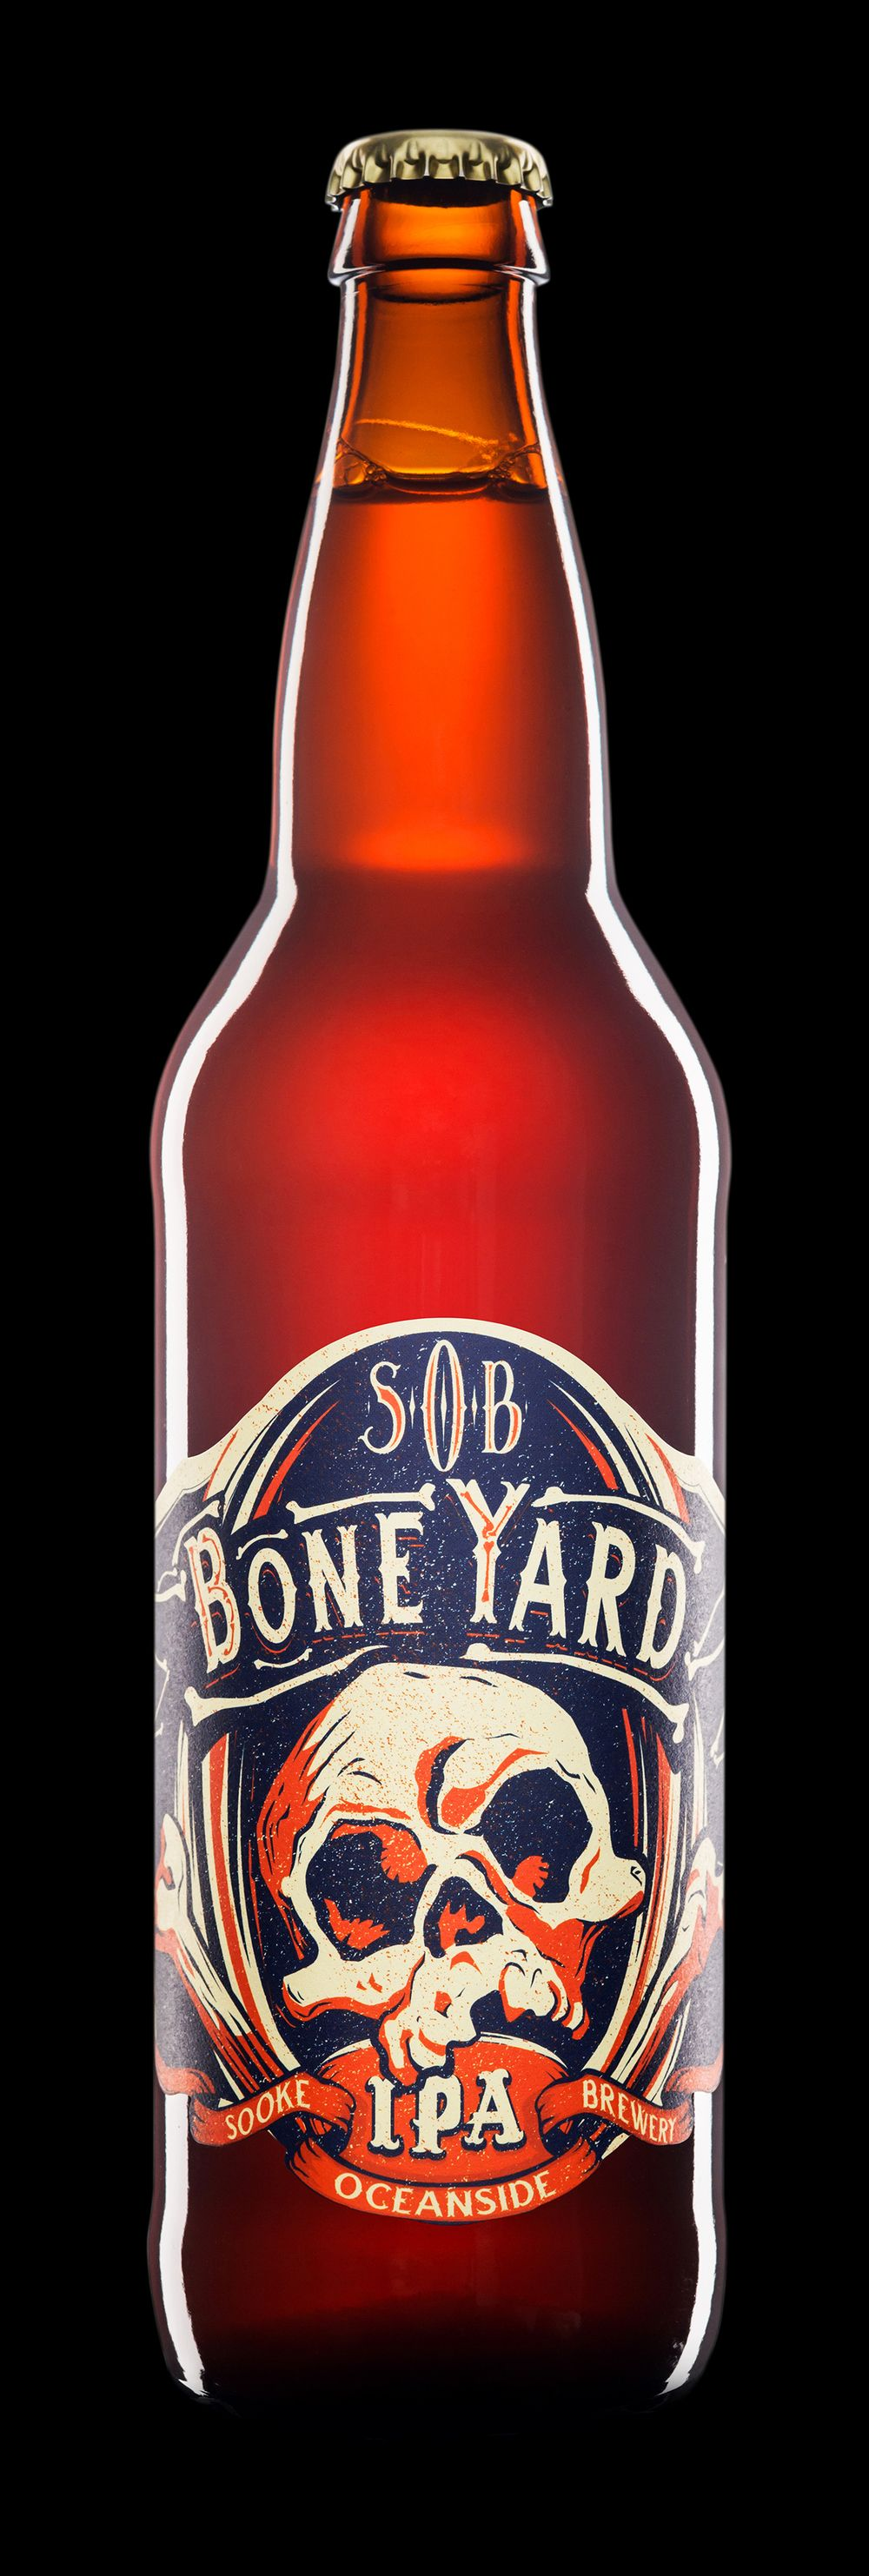 Pin By Kandy Whitefield On Drinks Beer Design Beer Label Design Craft Beer Design